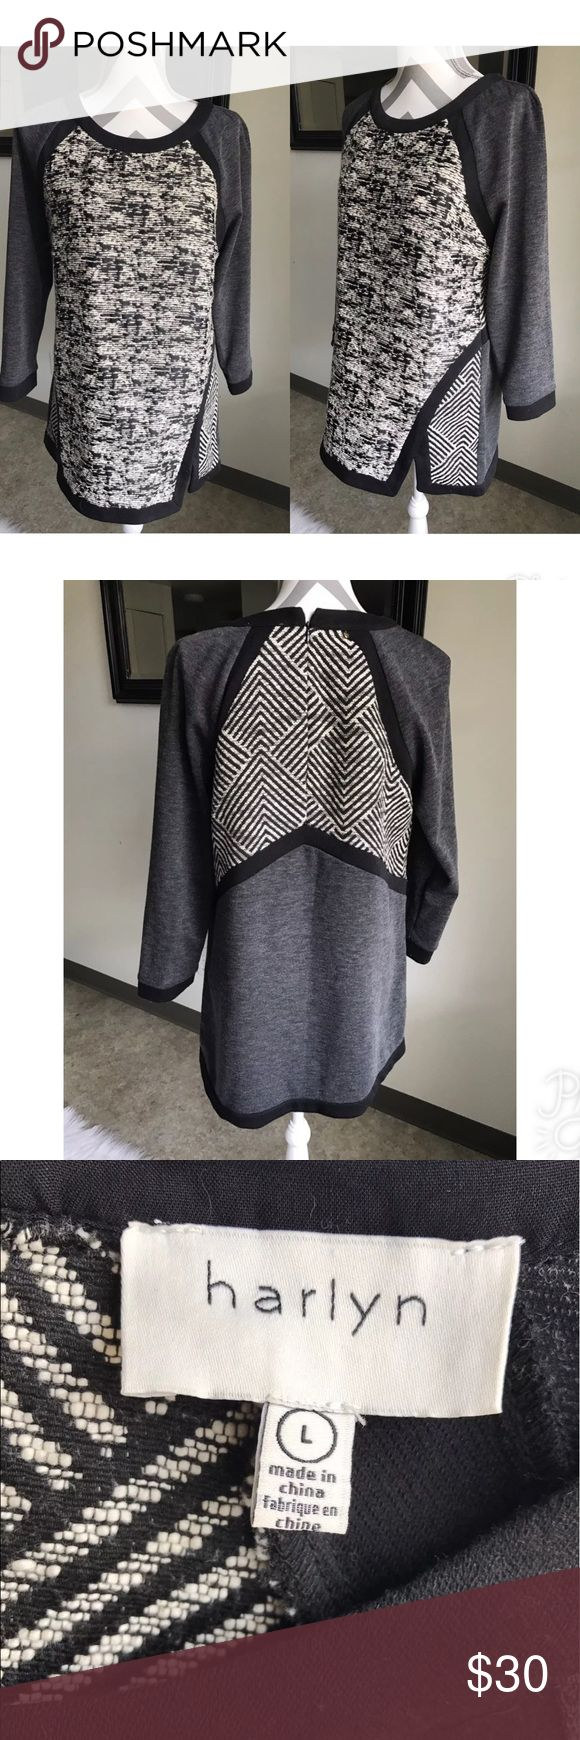 Anthropologie Harlyn Adelaide Black Tunic dress Anthropologie Harlyn Adelaide Pullover Black Motif  Tunic Top $88 SZ L great condition Anthropologie Tops Tunics